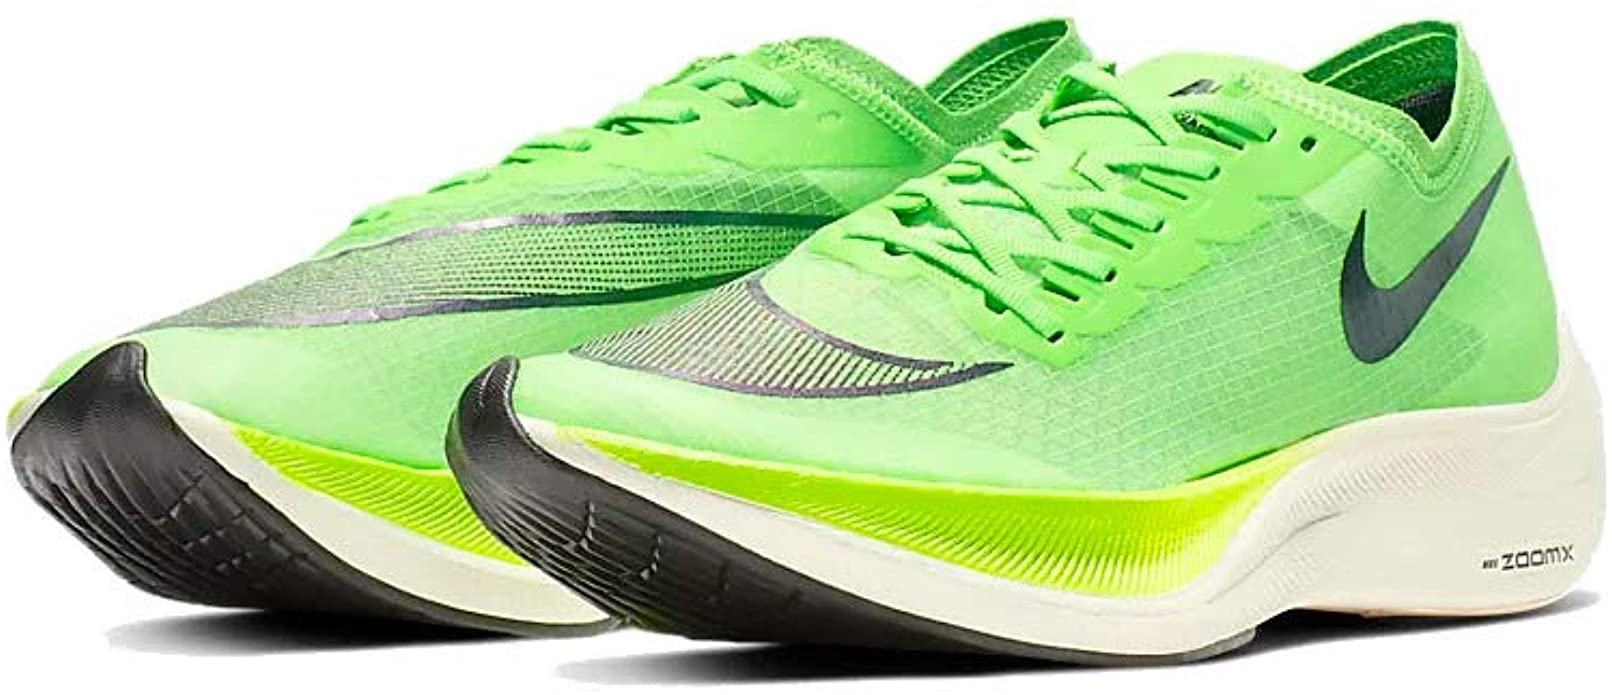 Nike ZoomX Vaporfly Next% : le test